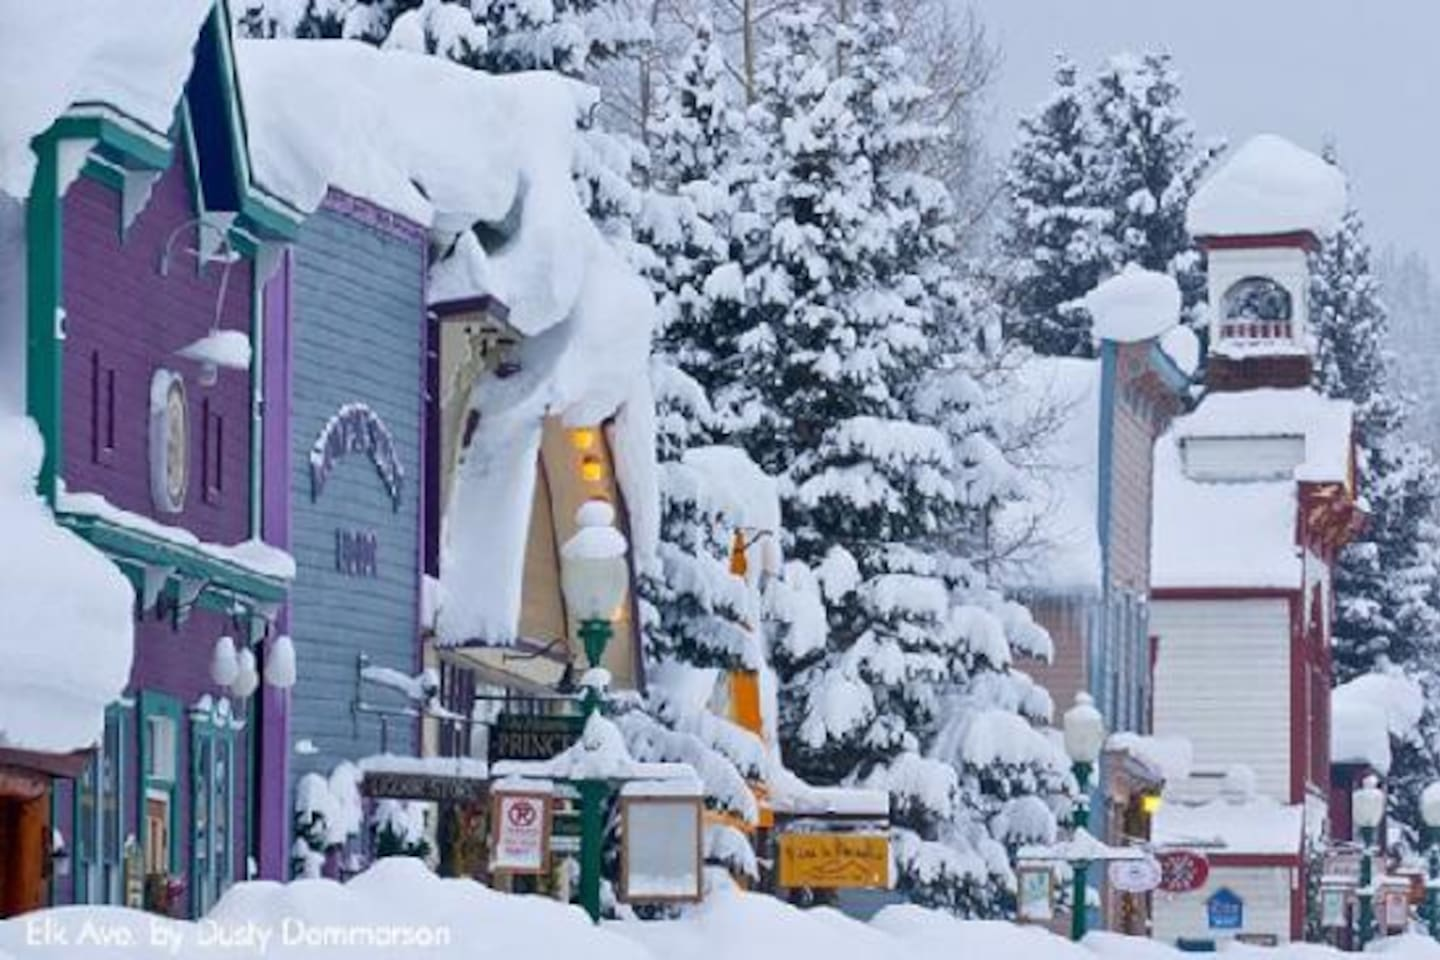 Downtown Crested Butte - free shuttle outside door takes you to downtown every 15 minutes